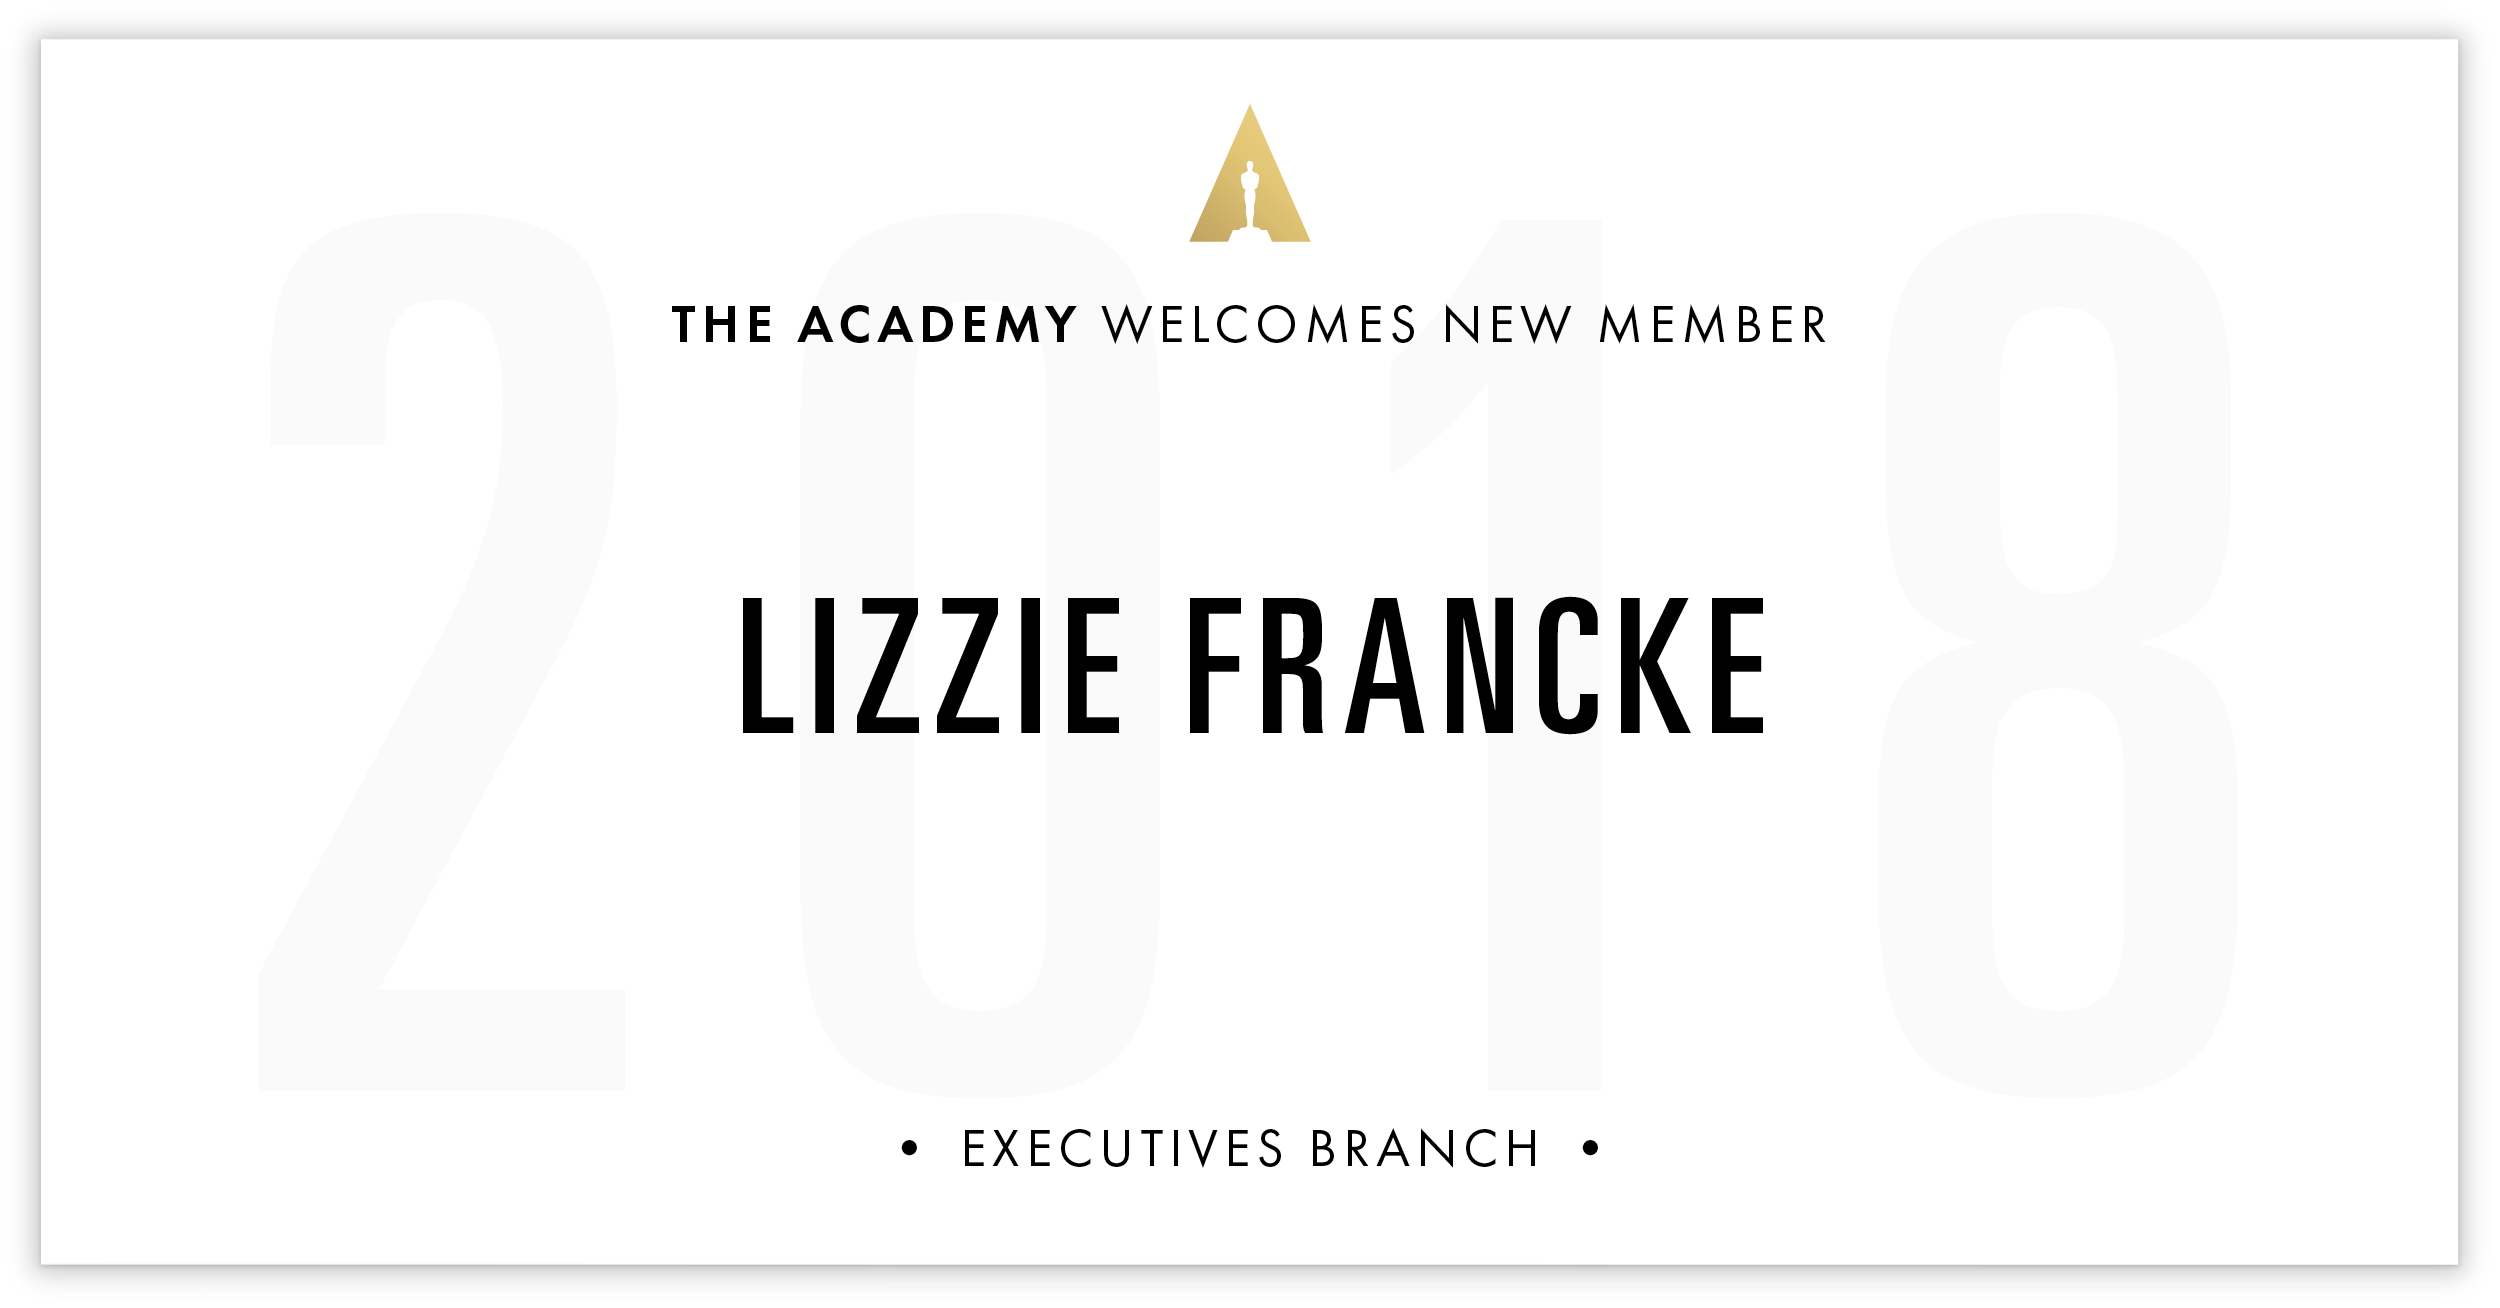 Lizzie Francke is invited!